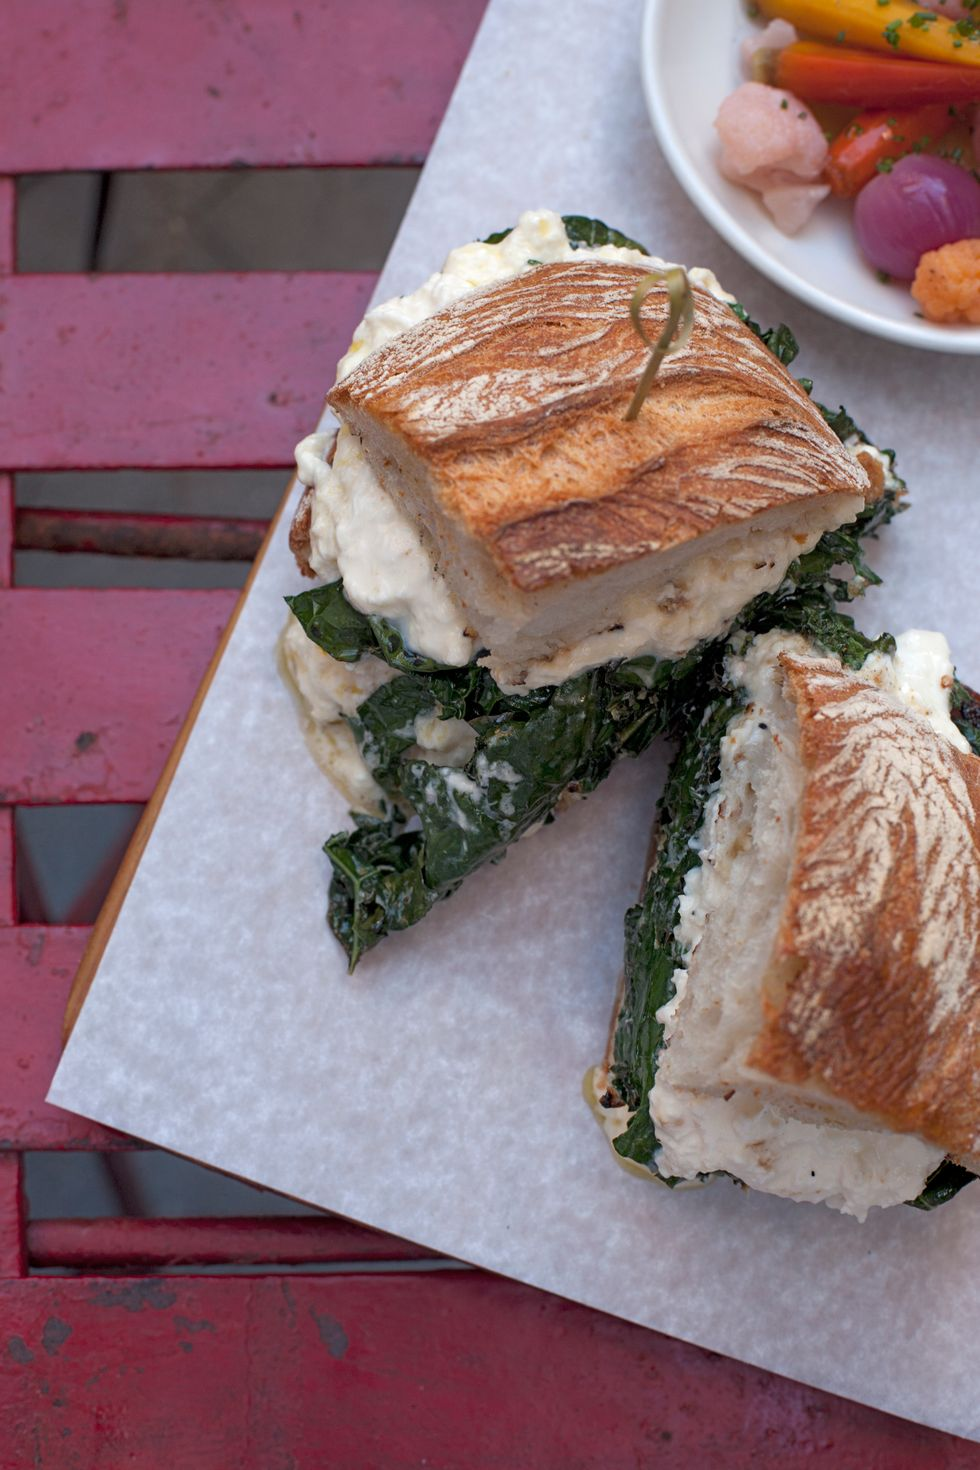 Sandwich of the Week: Tuscan Kale from Il Buco Alimentari & Vineria